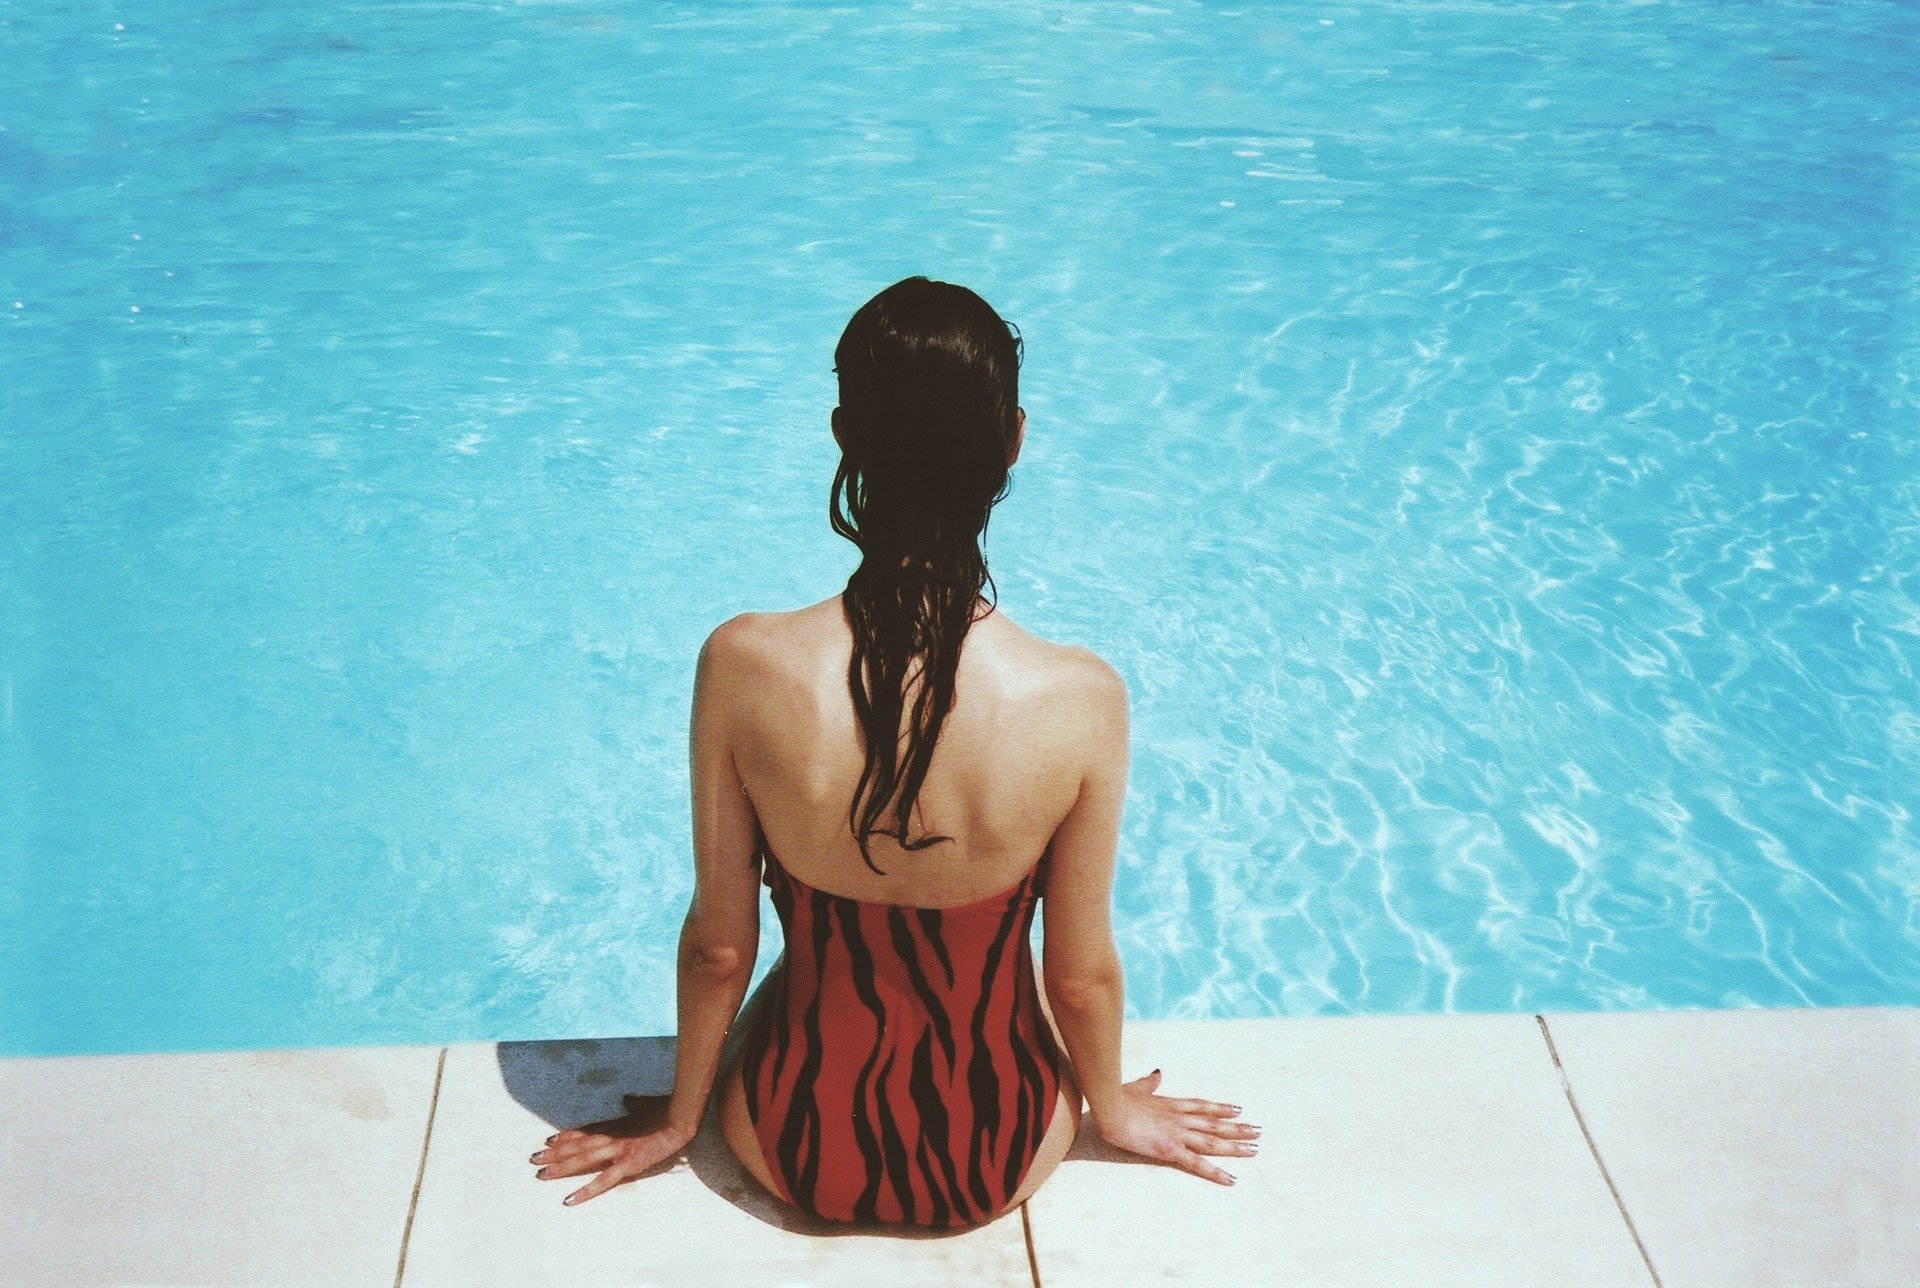 , What must be considered when planning a swimming pool?, Best Garden, Home And DIY Tips